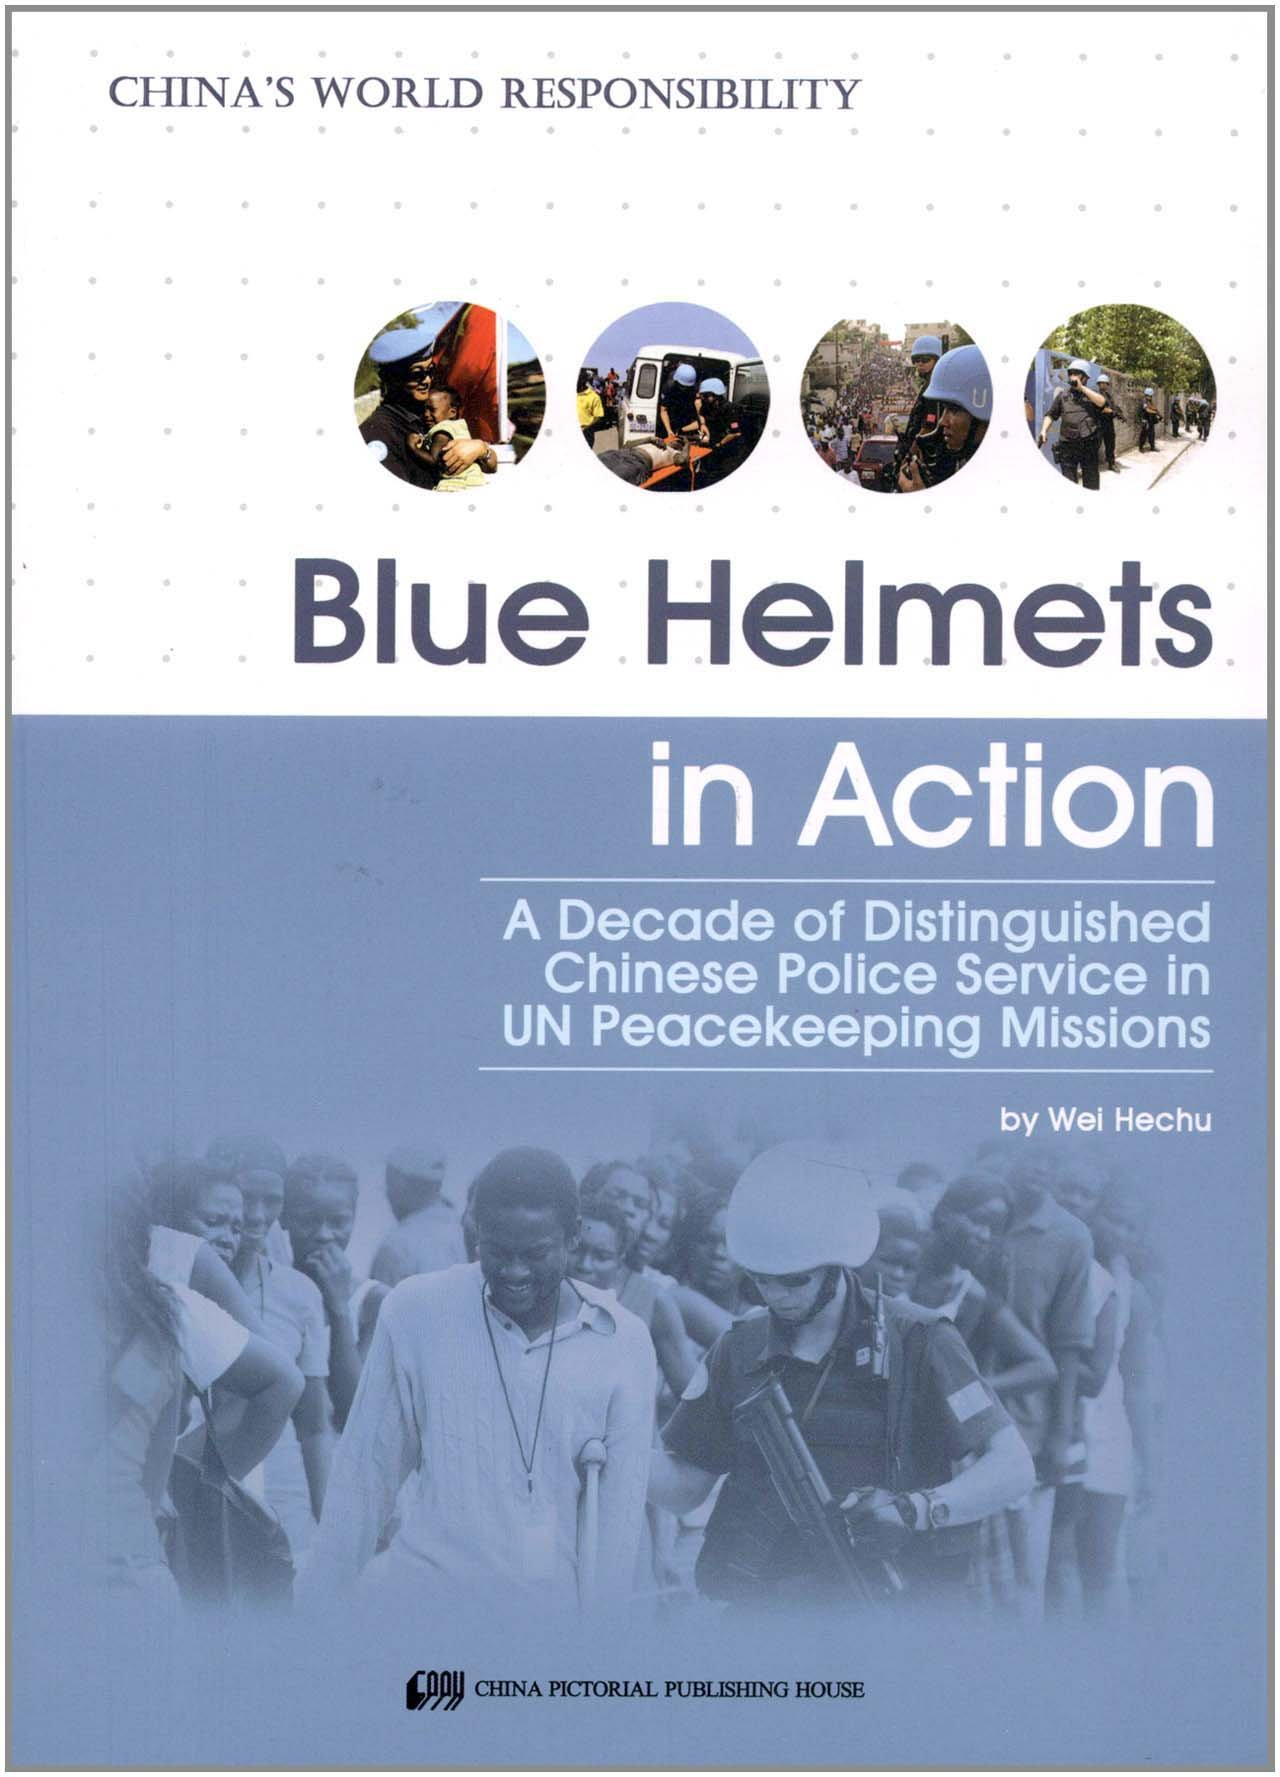 Blue Helmets in Action - China's World Responsibility